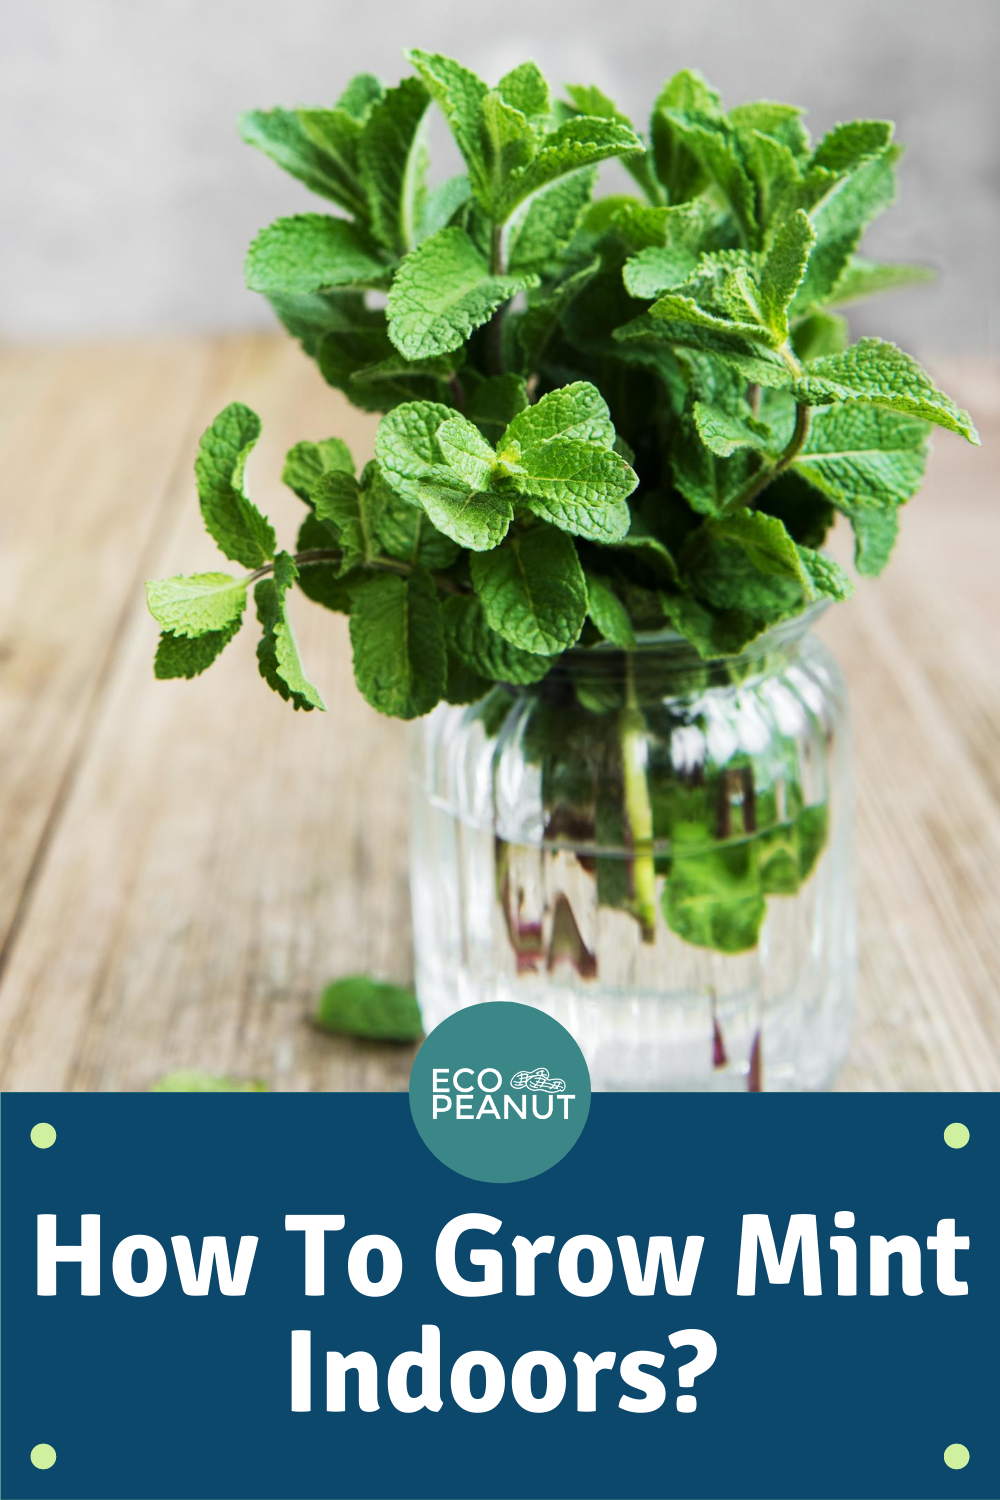 How To Grow Mint Indoors The Easy And Simple Way Eco Peanut In 2020 Growing Mint Growing Mint Indoors Mint